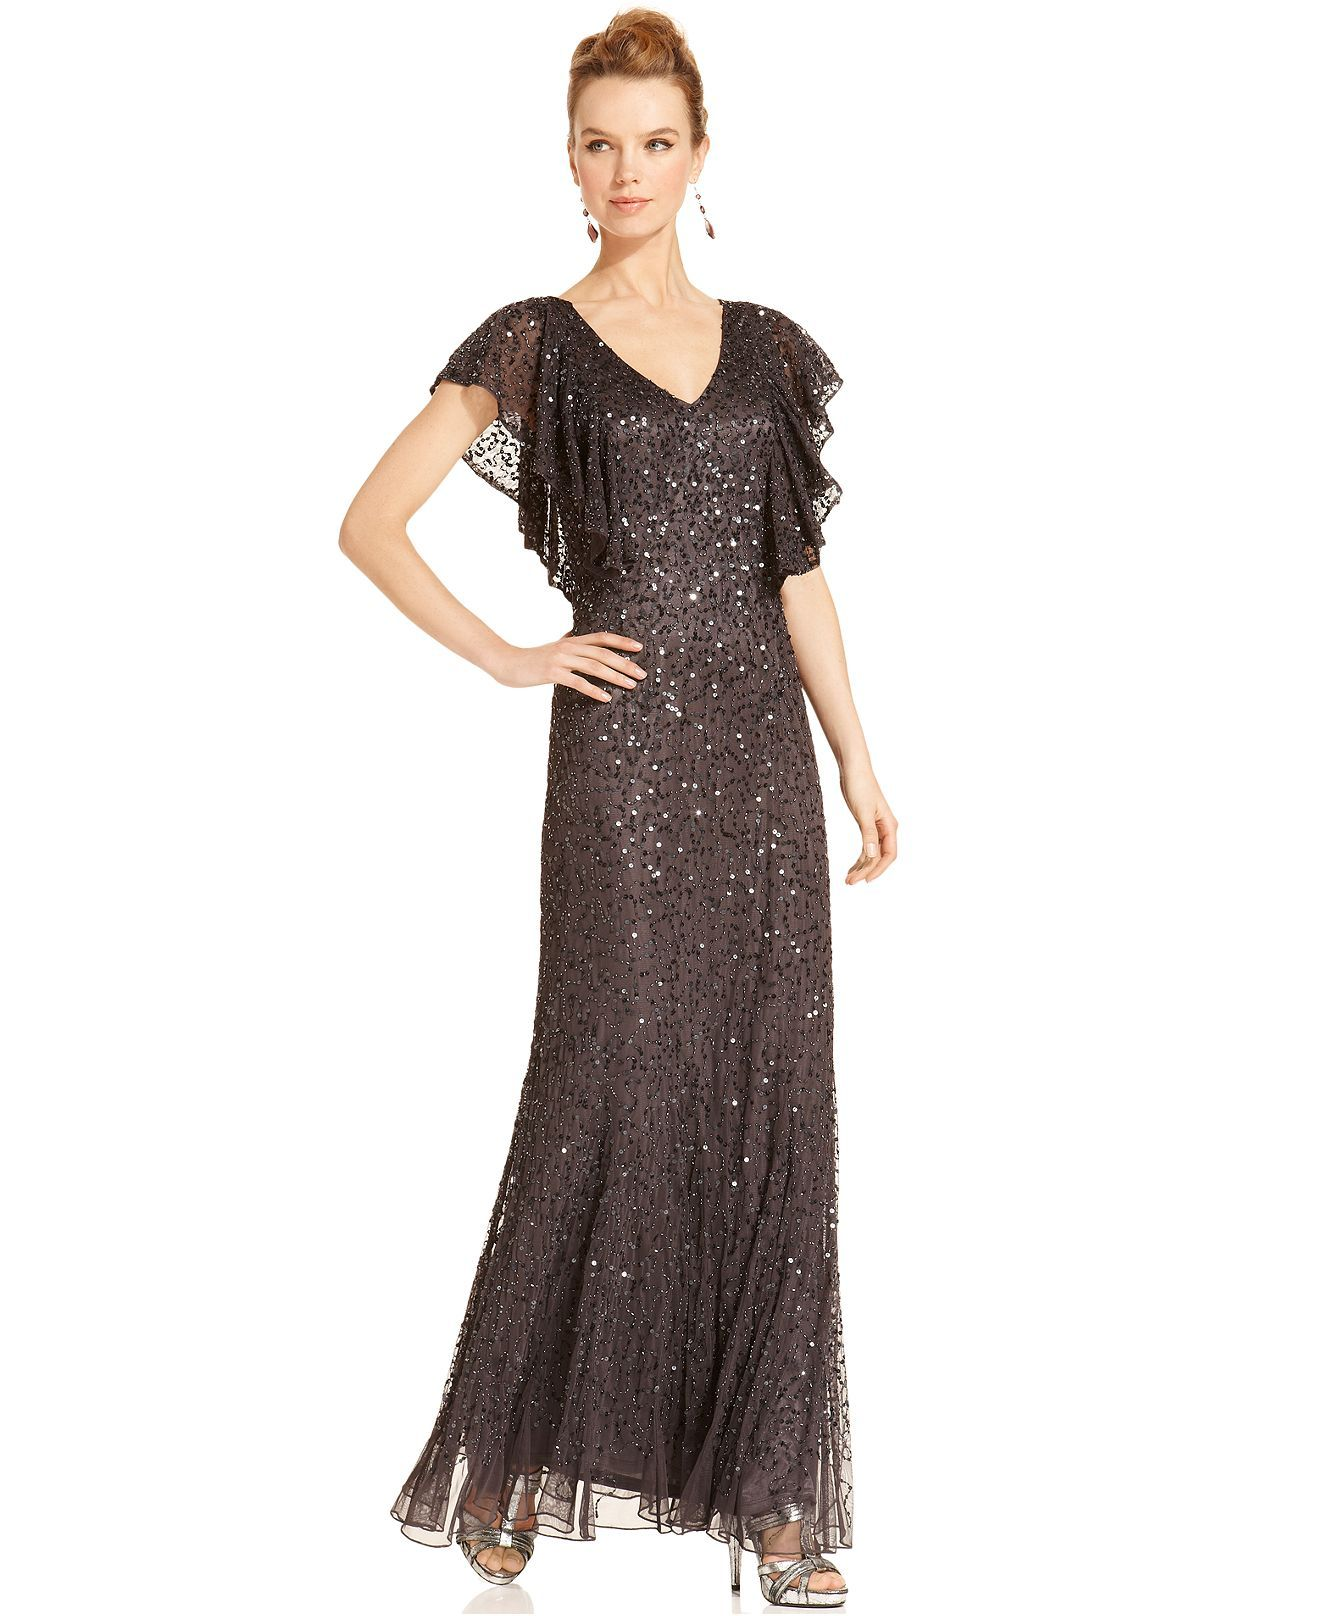 JS Collections Dress, Short-Sleeve Beaded Sequined Gown   Clothes ...